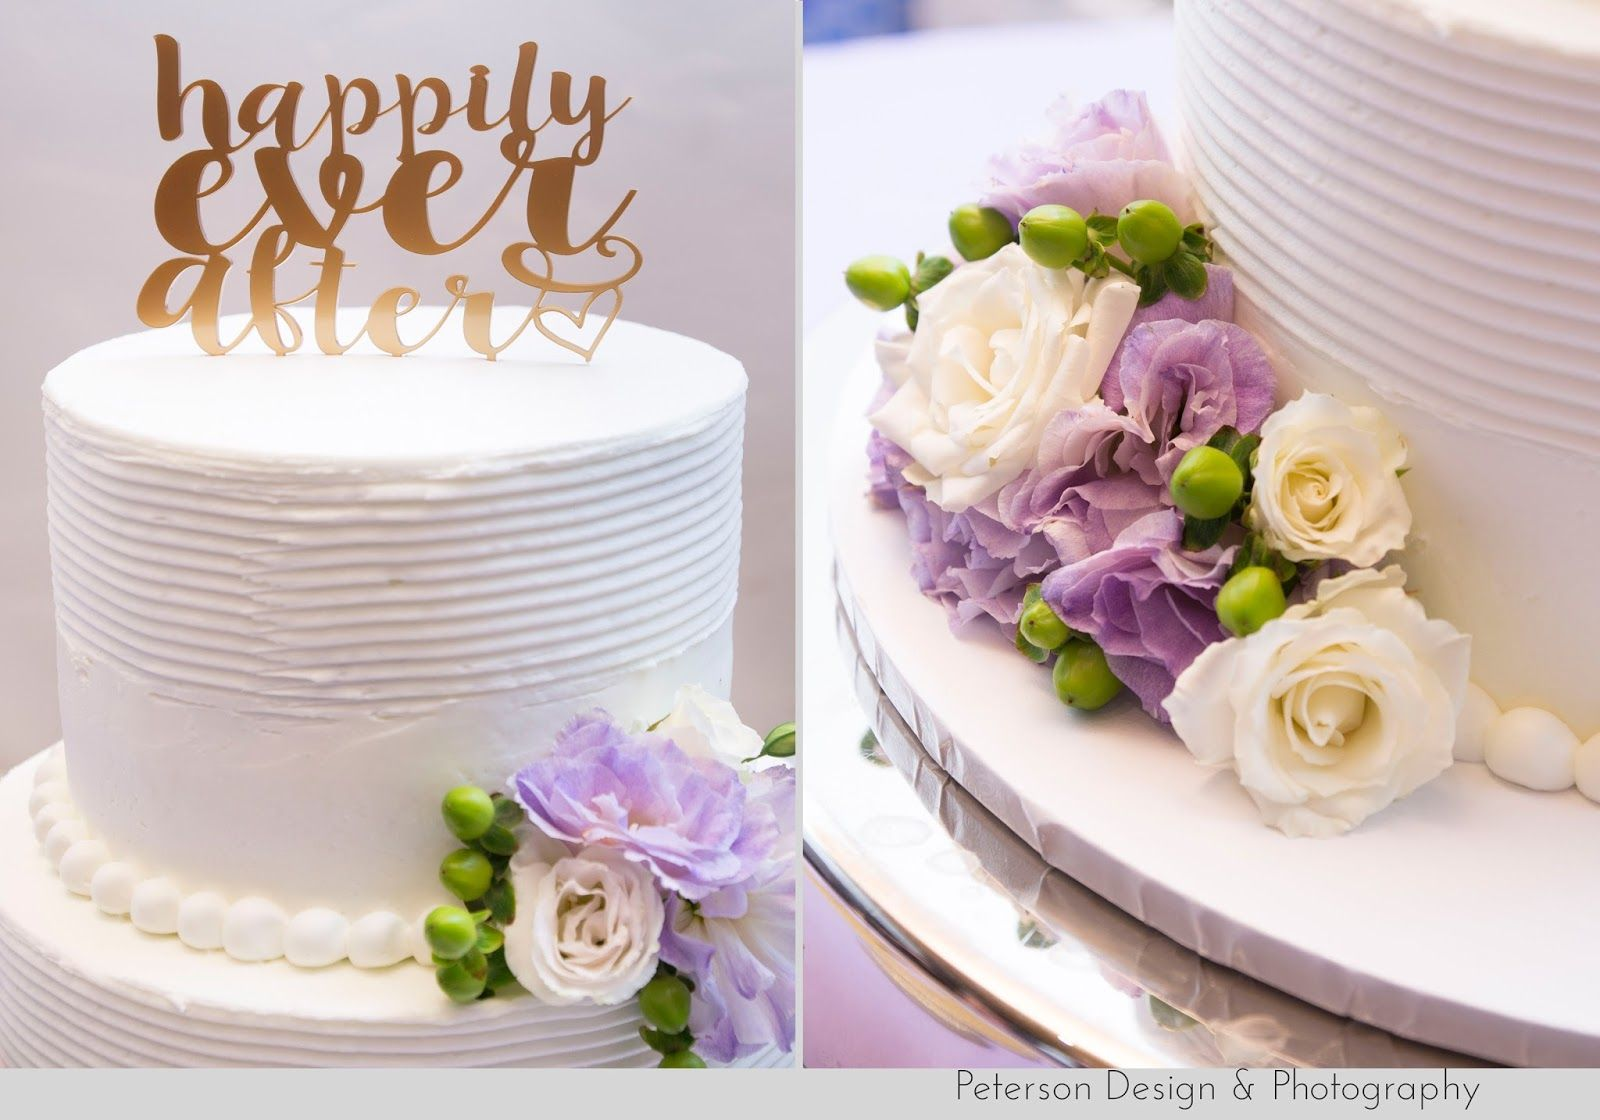 Traditional, purple and ivory wedding at Pasadena City Hall, St. Therese Catholic Church in Alhambra and George G. Golleher Alumni House on the Cal State Fullerton  happily ever after cake topper